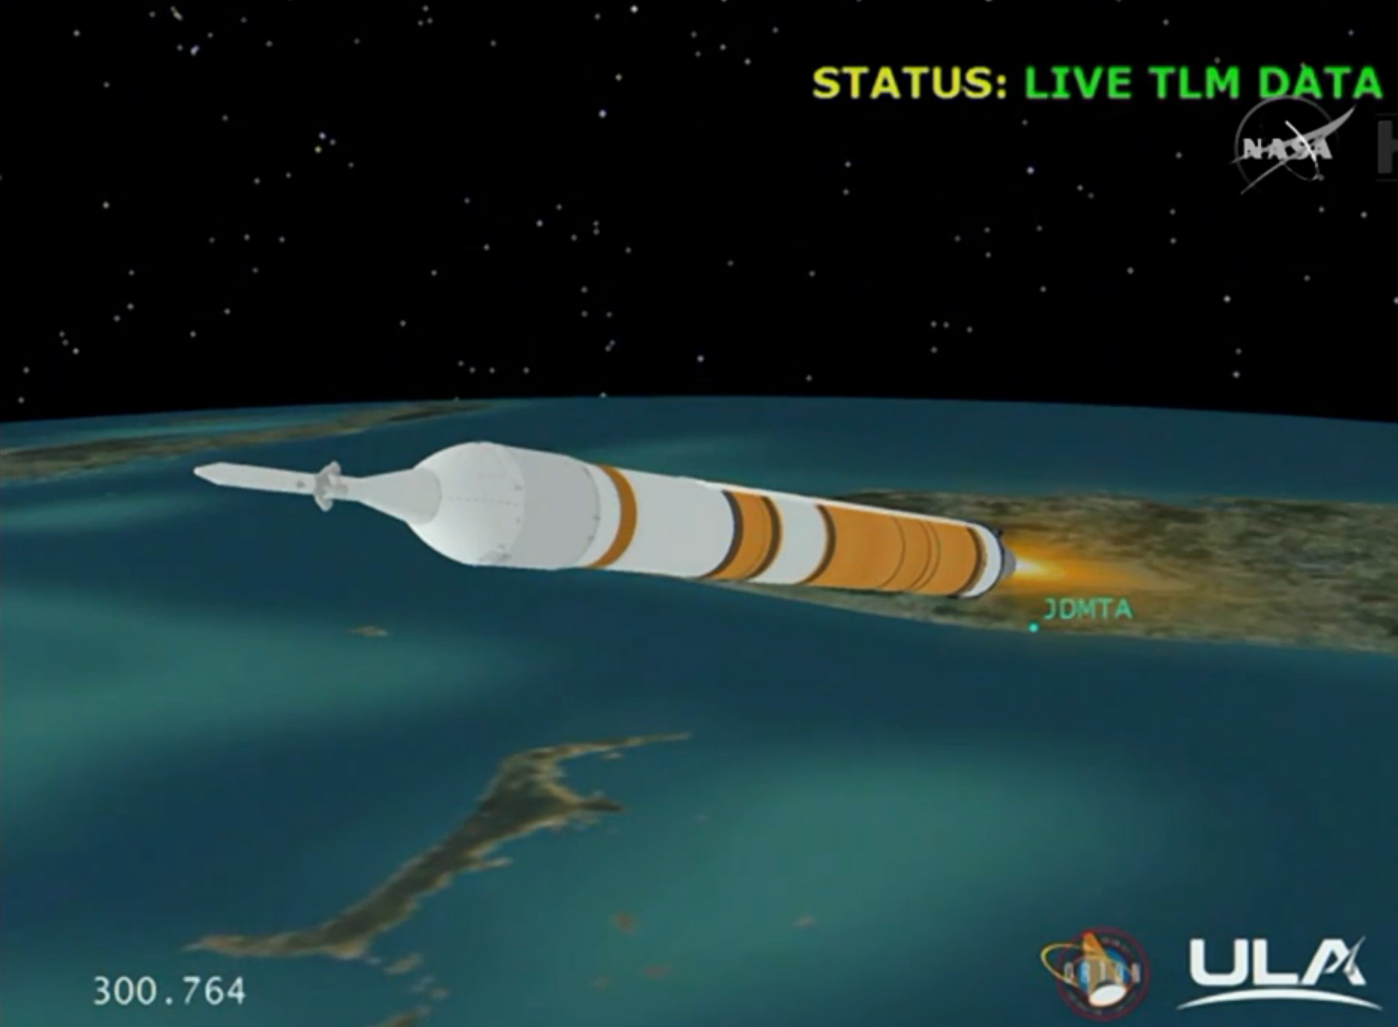 Live computer graphical data of the rocket bearing the Orion spacecraft travelling out of the Earth's atmosphere